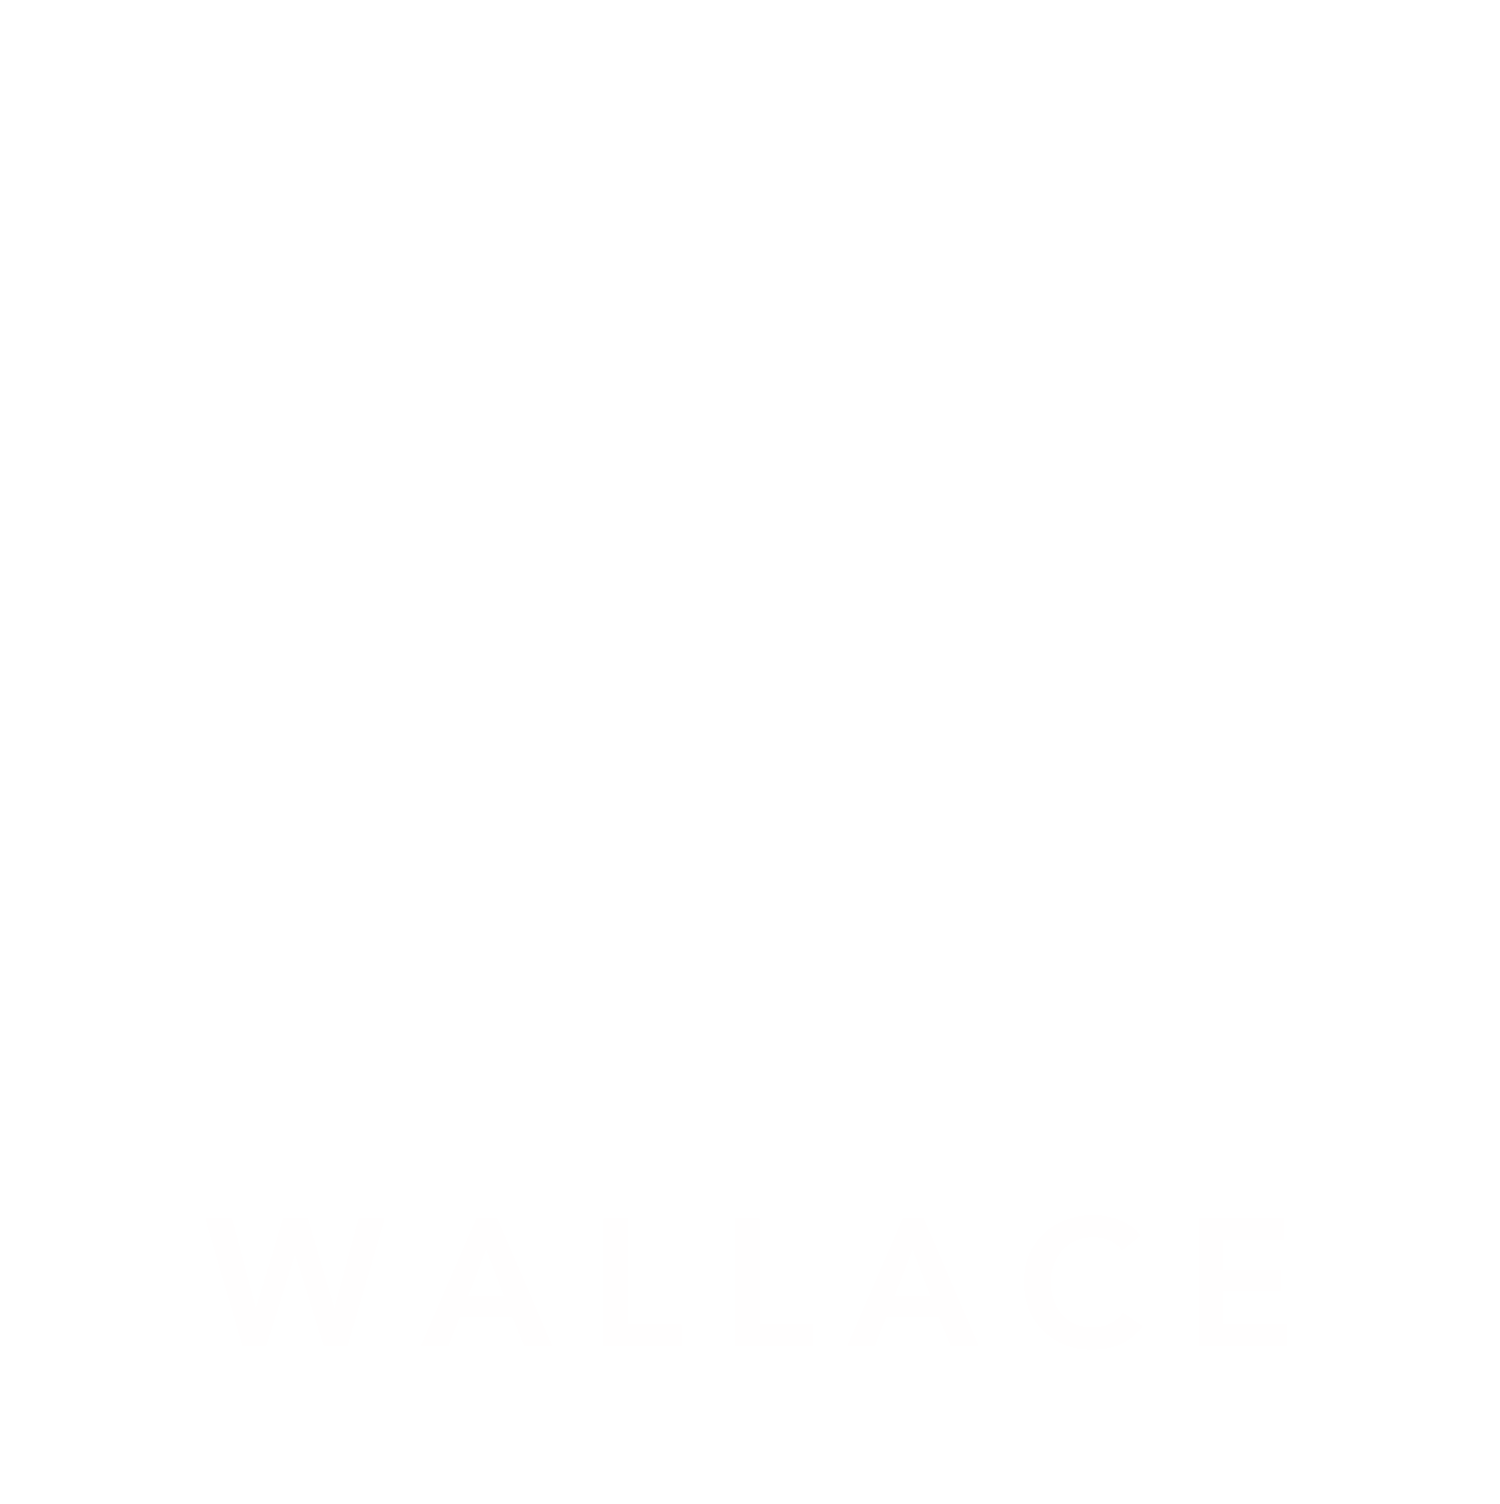 Wallace Homes & Loans